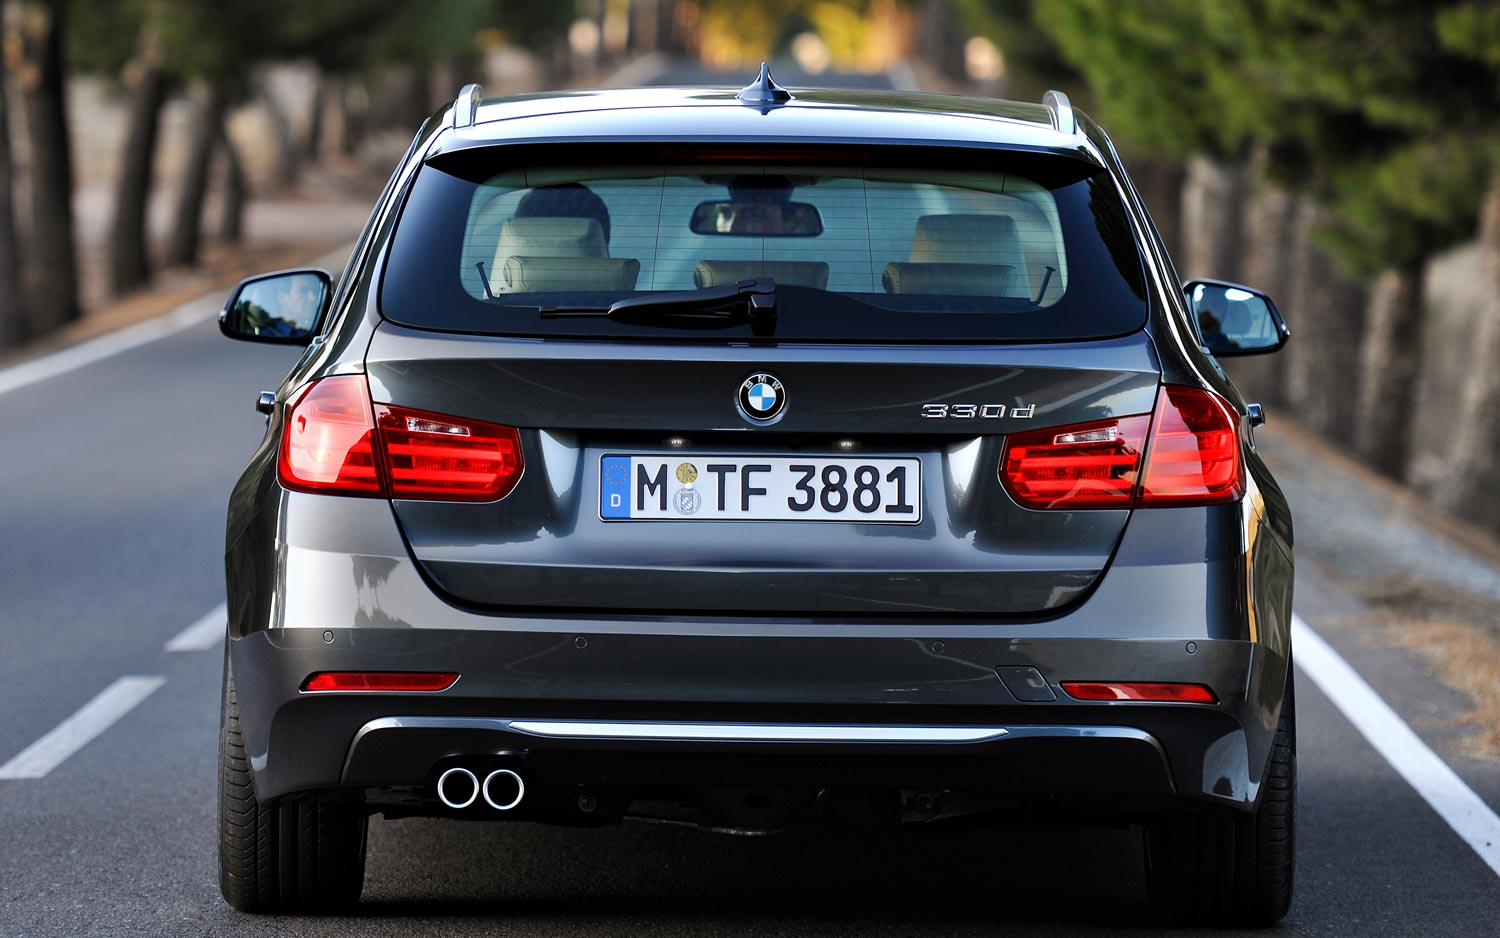 BMW 3 series 330d 2013 photo - 9